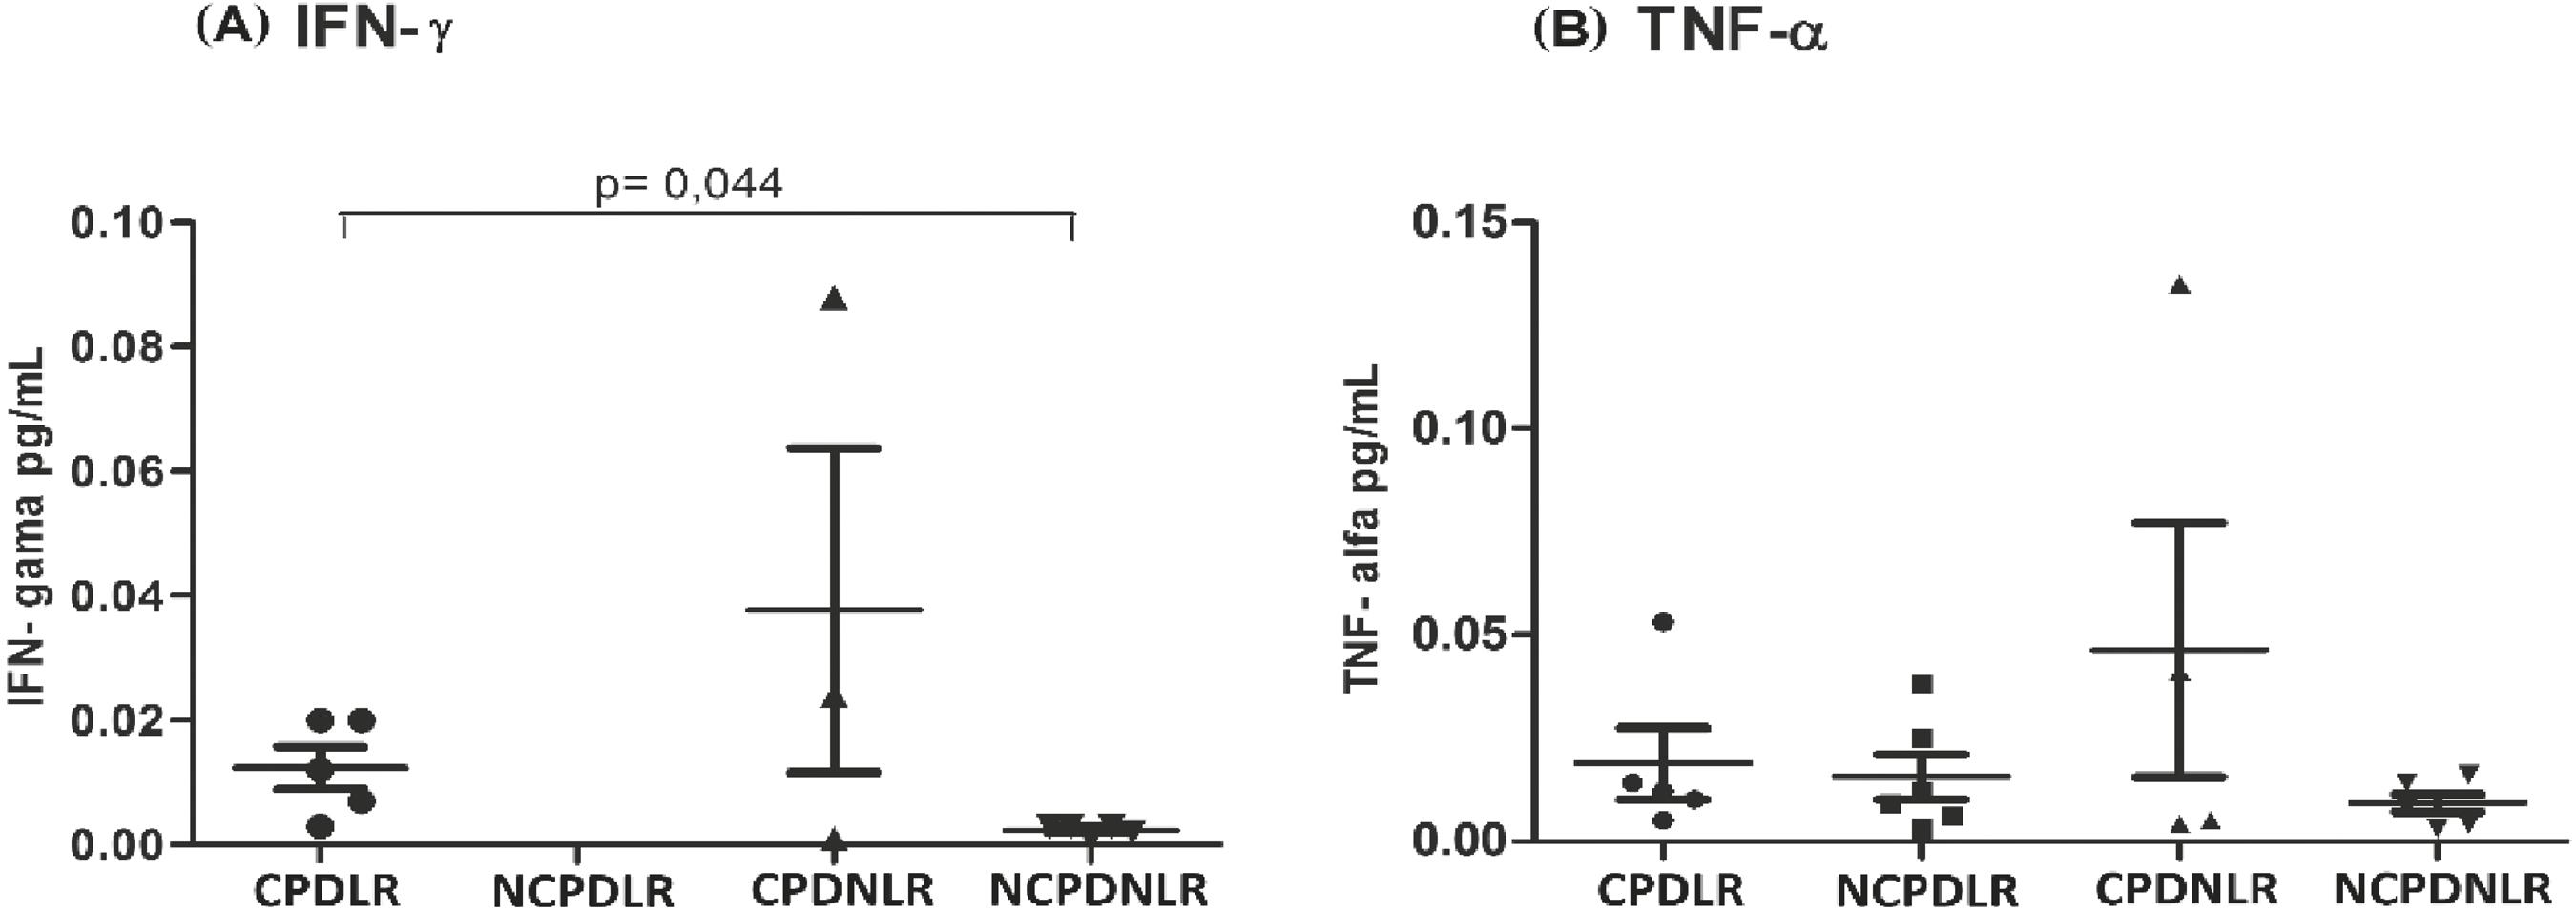 Comparison between serum levels of (A) IFN-γ and (B) TNF-α among patients with CPD and no CPD and with LR and no LR. Mann-Whitney test; 5% significance level. CPDLR (chronic periodontal disease and leprosy reaction); NCPDLR (no chronic periodontal disease and leprosy reaction); CPDNLR (chronic periodontal disease and no leprosy reaction); NCDPNLR (no chronic periodontal disease and no leprosy reaction).